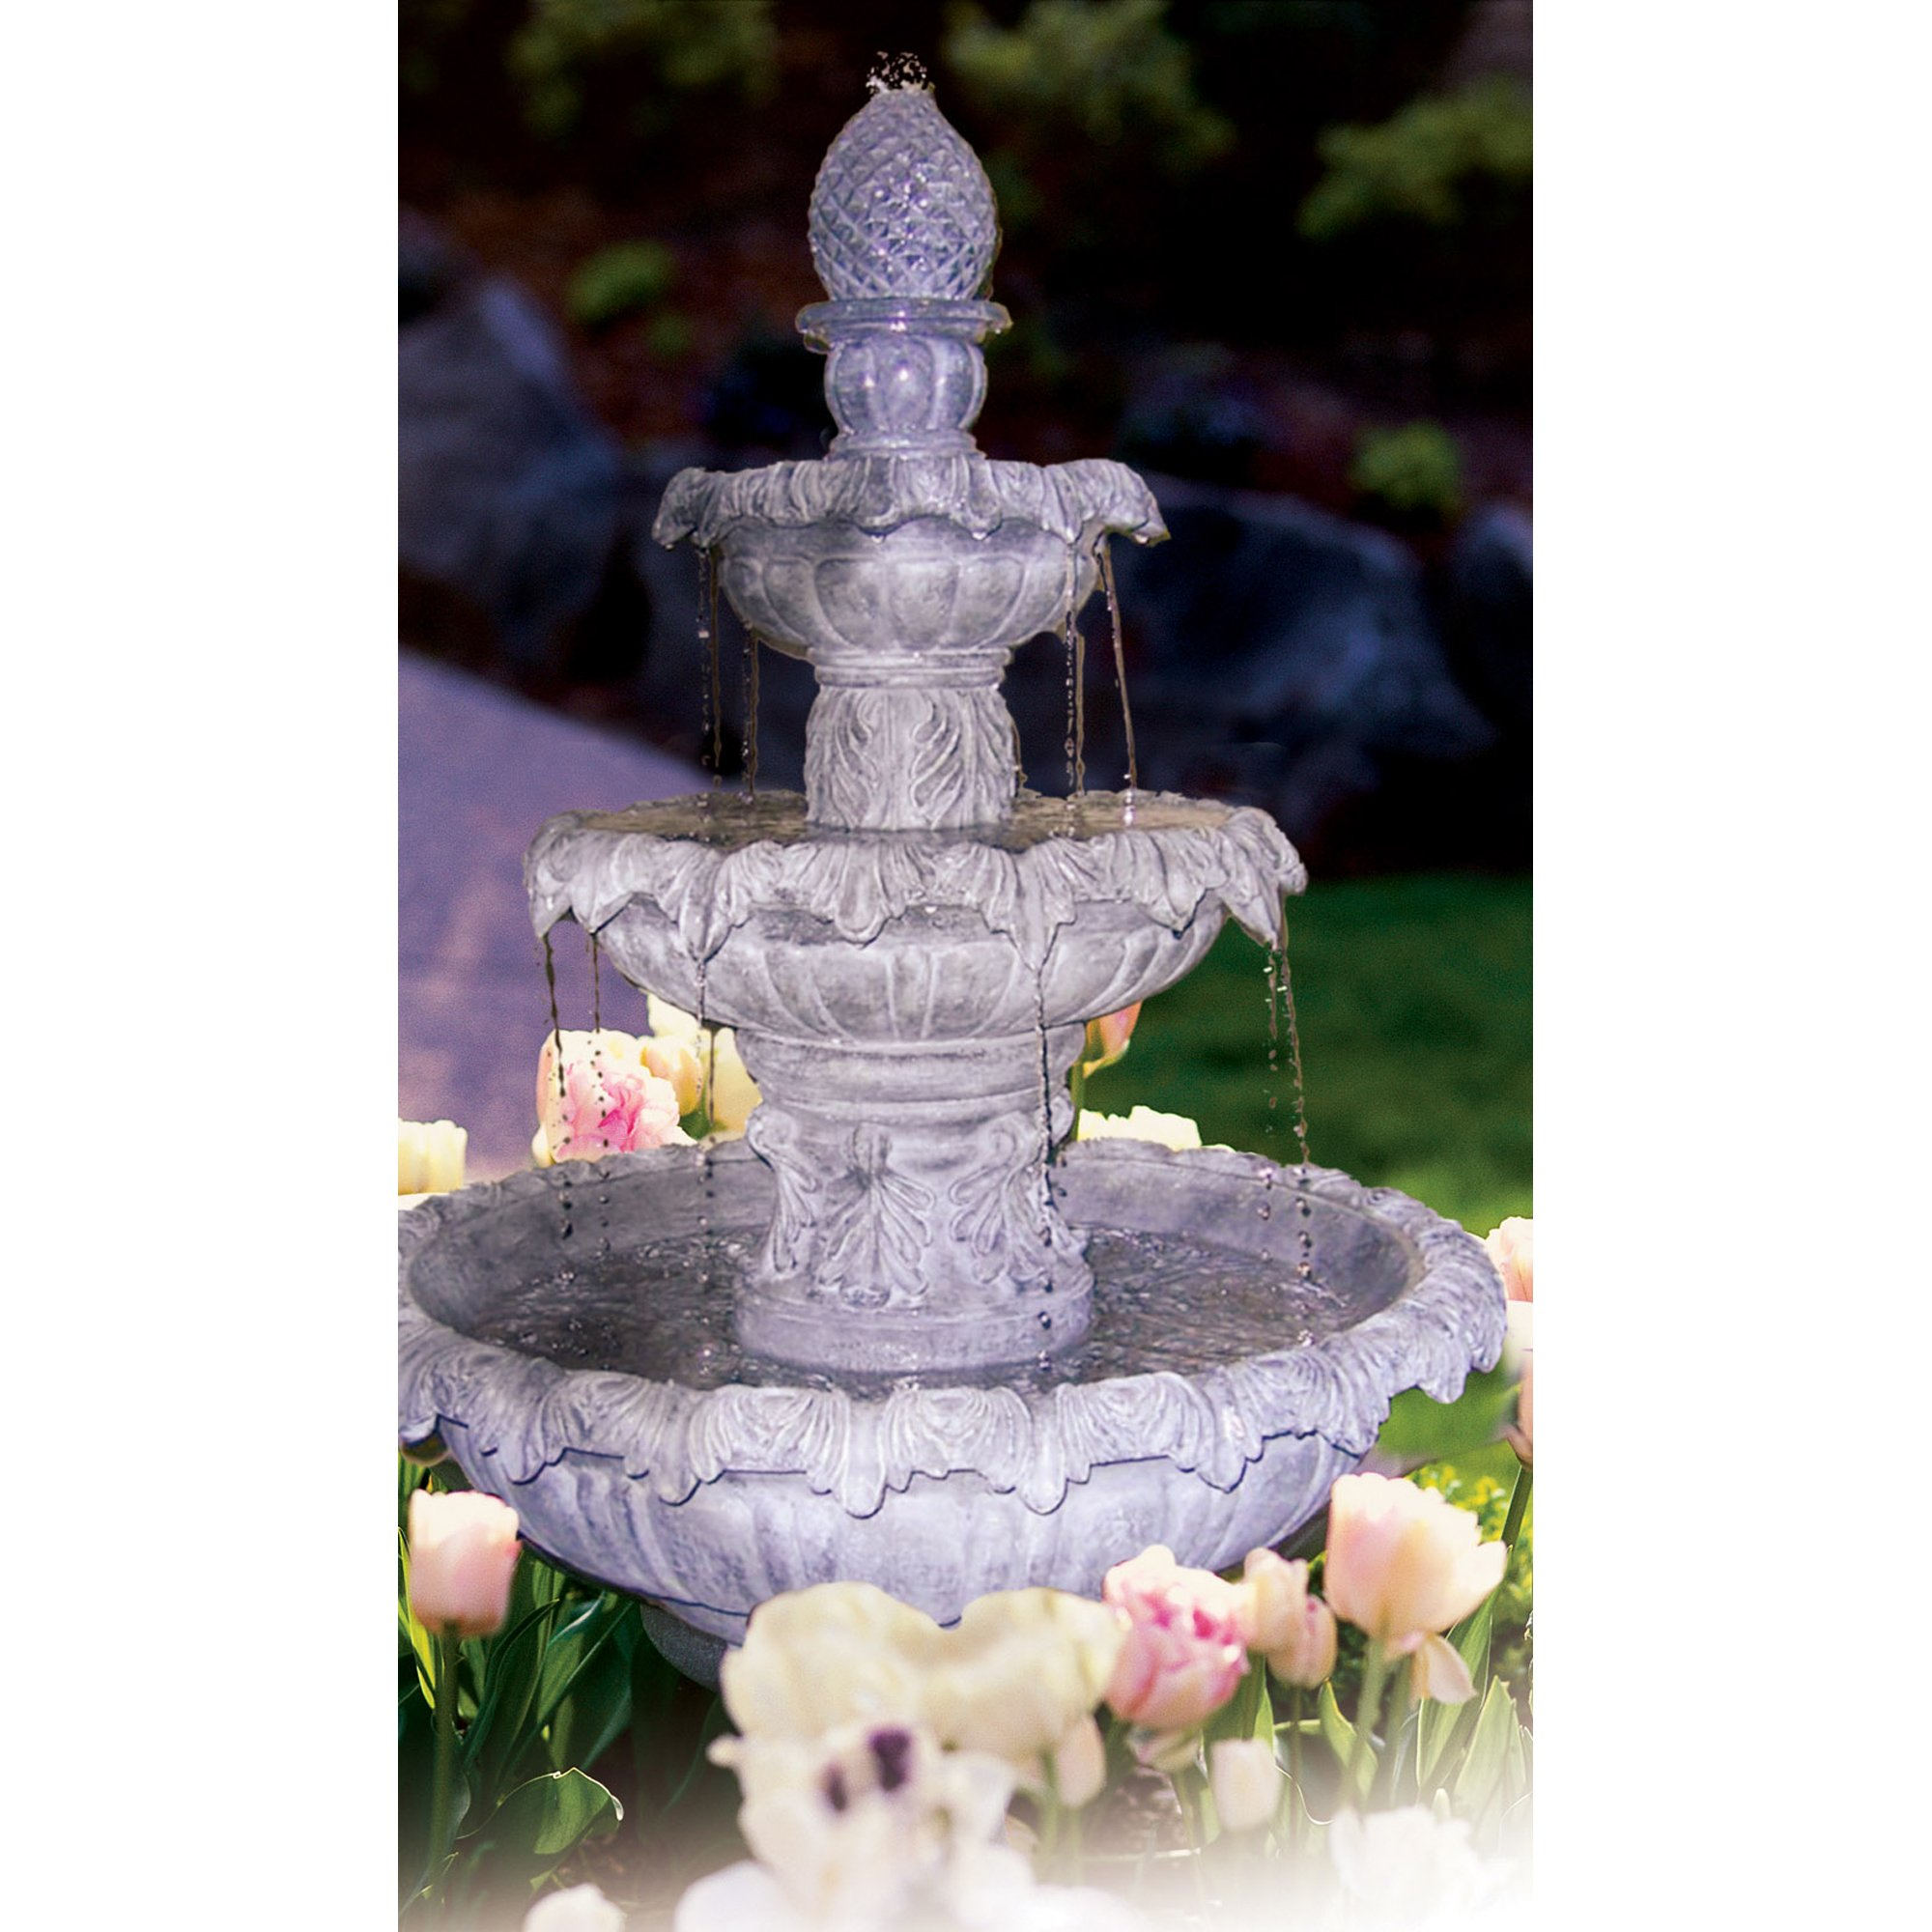 Kenroy Home 53200PLBZ Costa Brava 46-Inch 56-Pound High Outdoor Fountain, Plum Bronze Finish by Kenroy Home